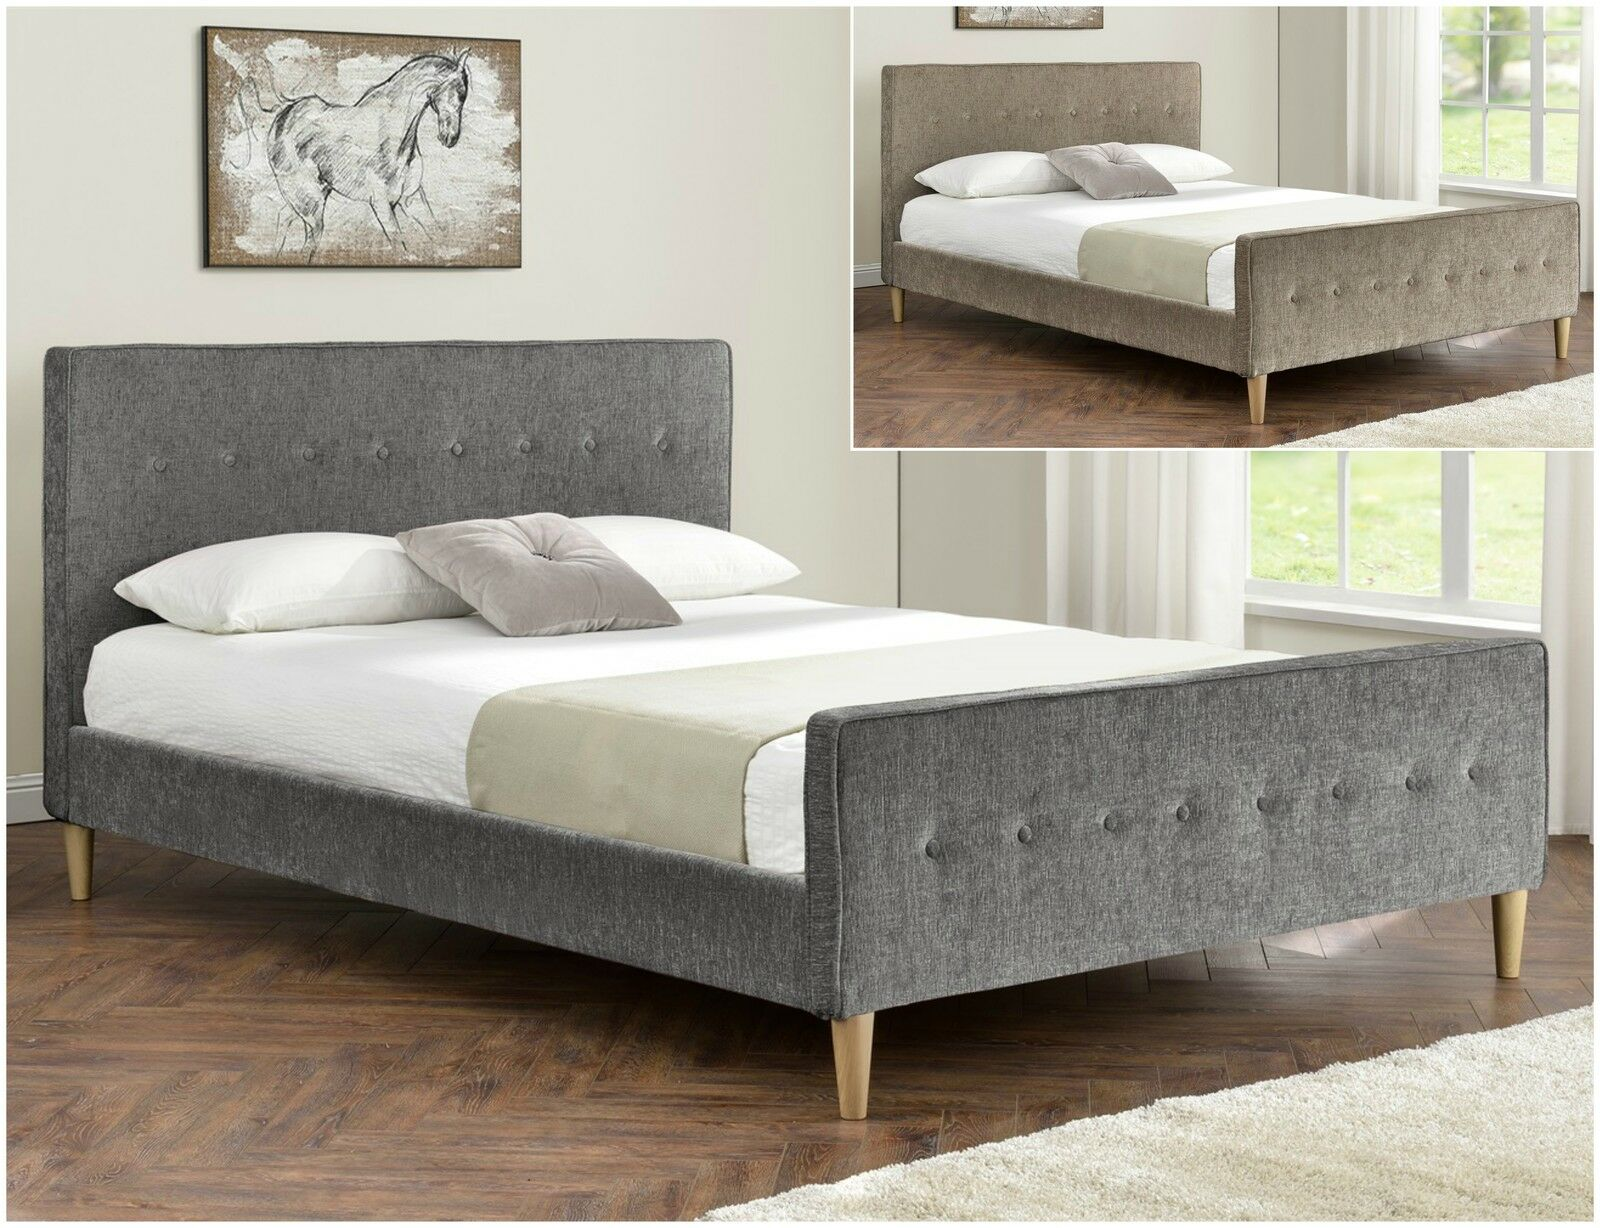 Chenille Fabric Upholstered Bed Frame Double King Size